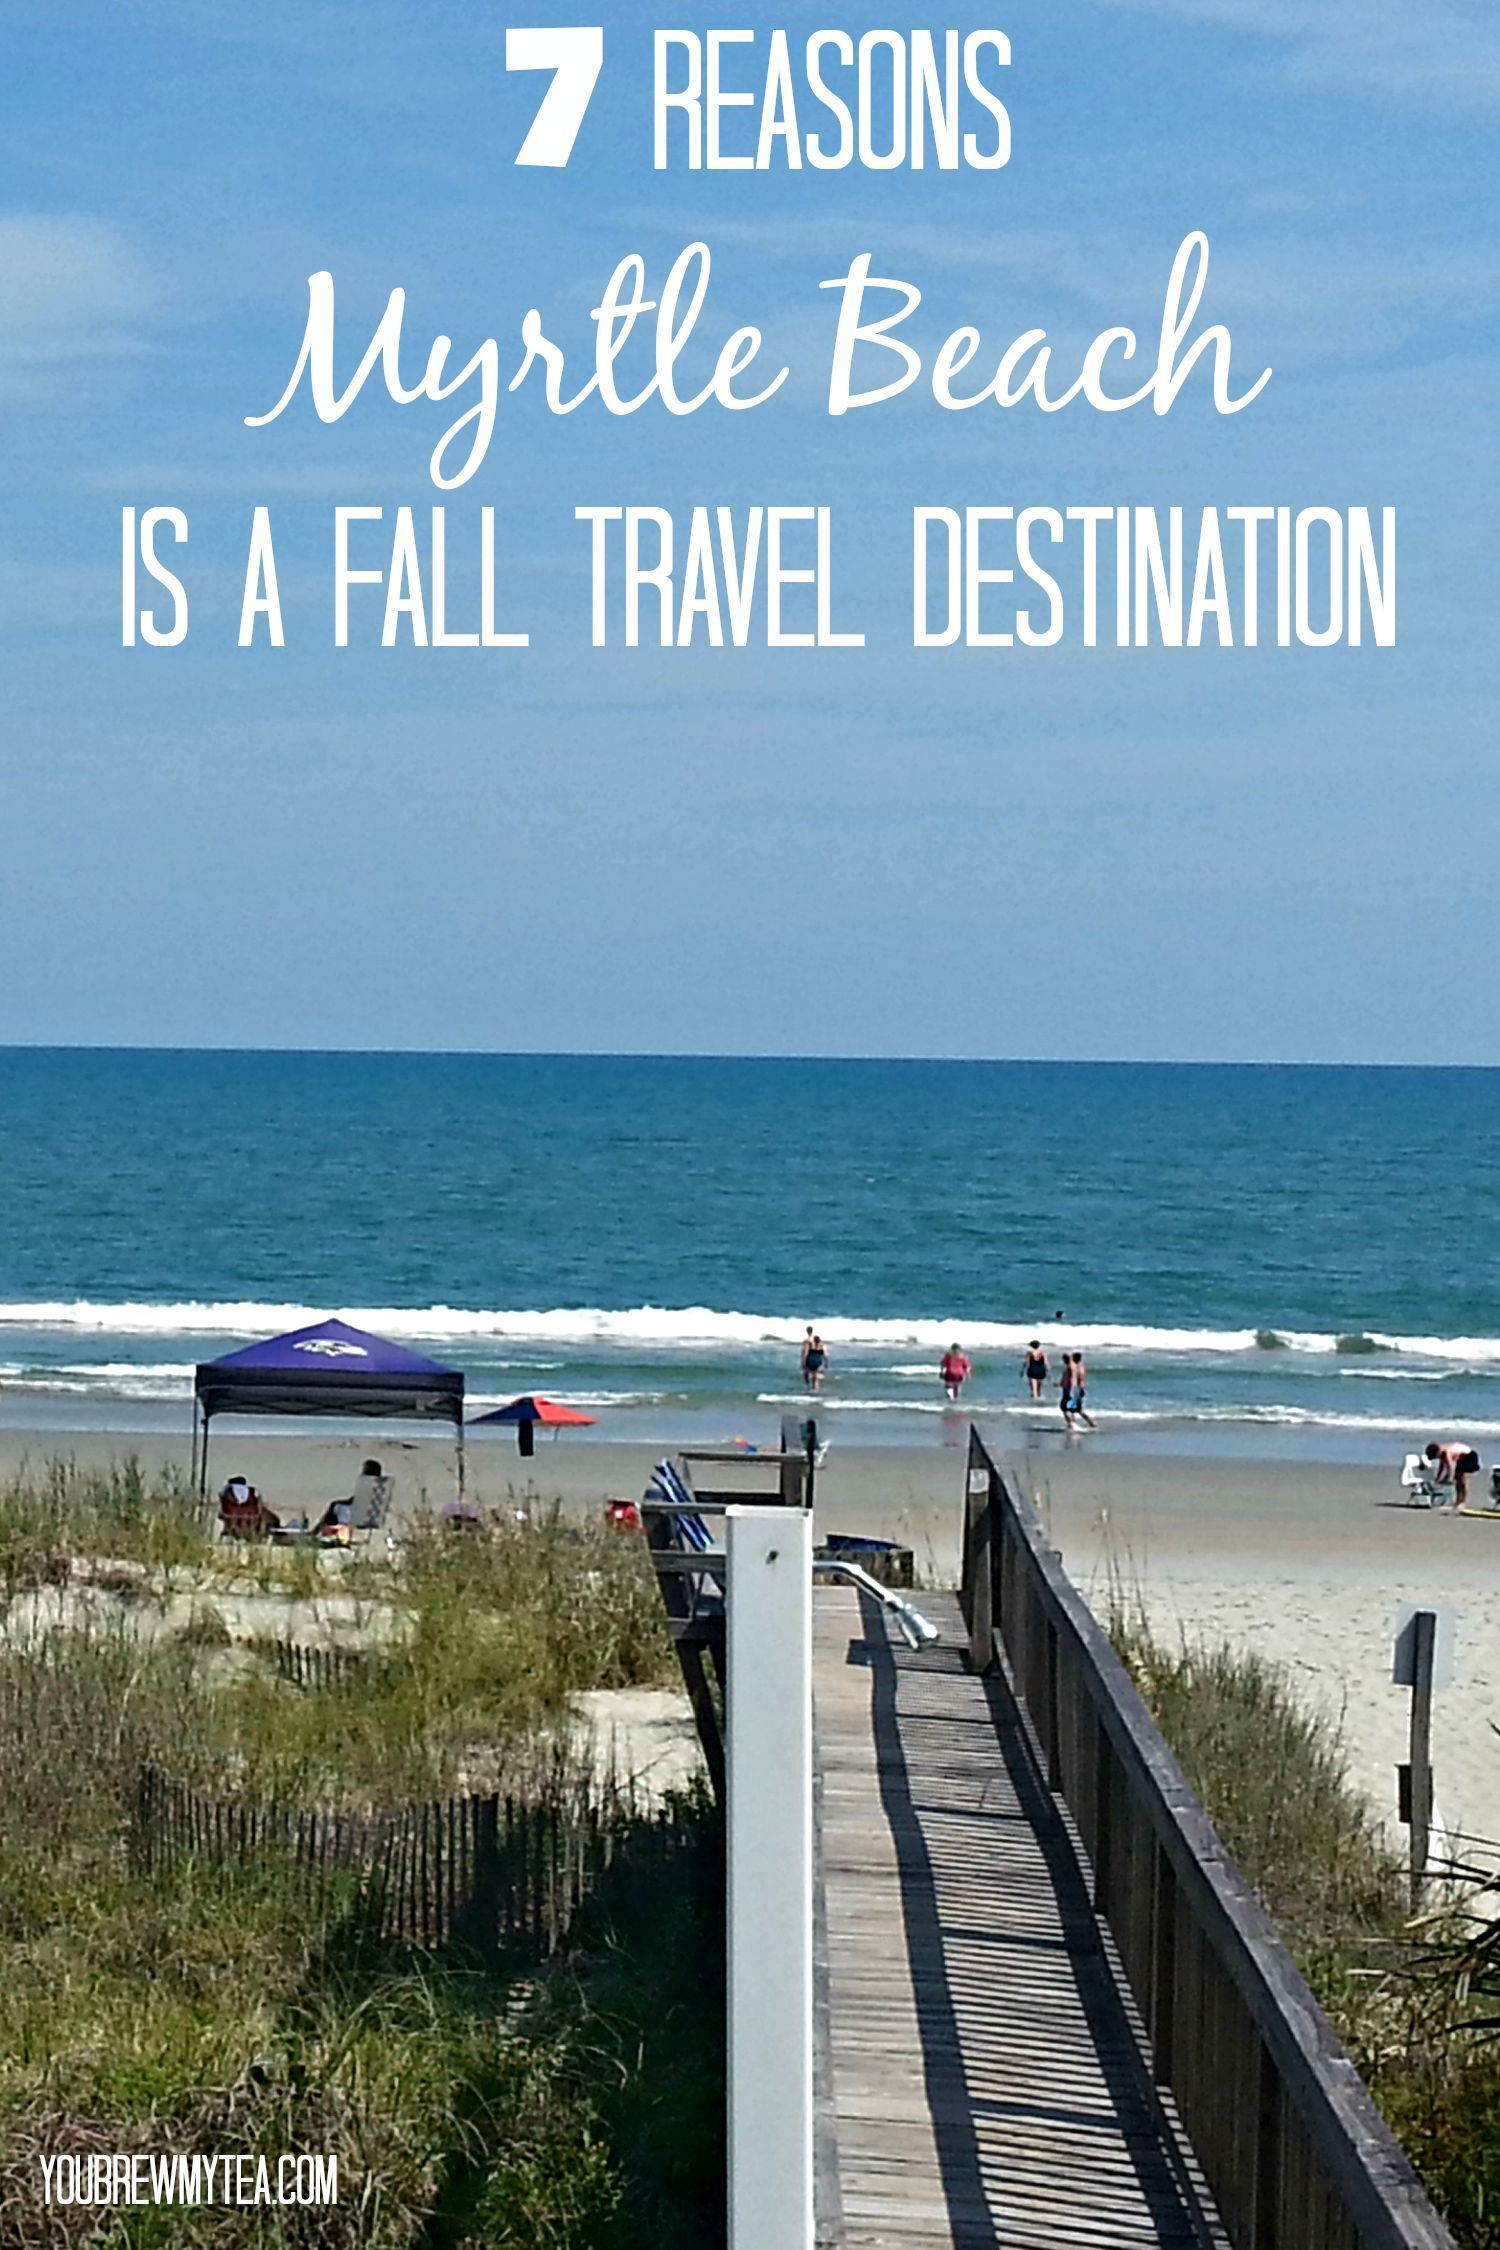 Travel To Myrtle Beach For More Than Just Spring Break Check Out Great Family Friendly Ideas Year Round Vacations Vacationideas